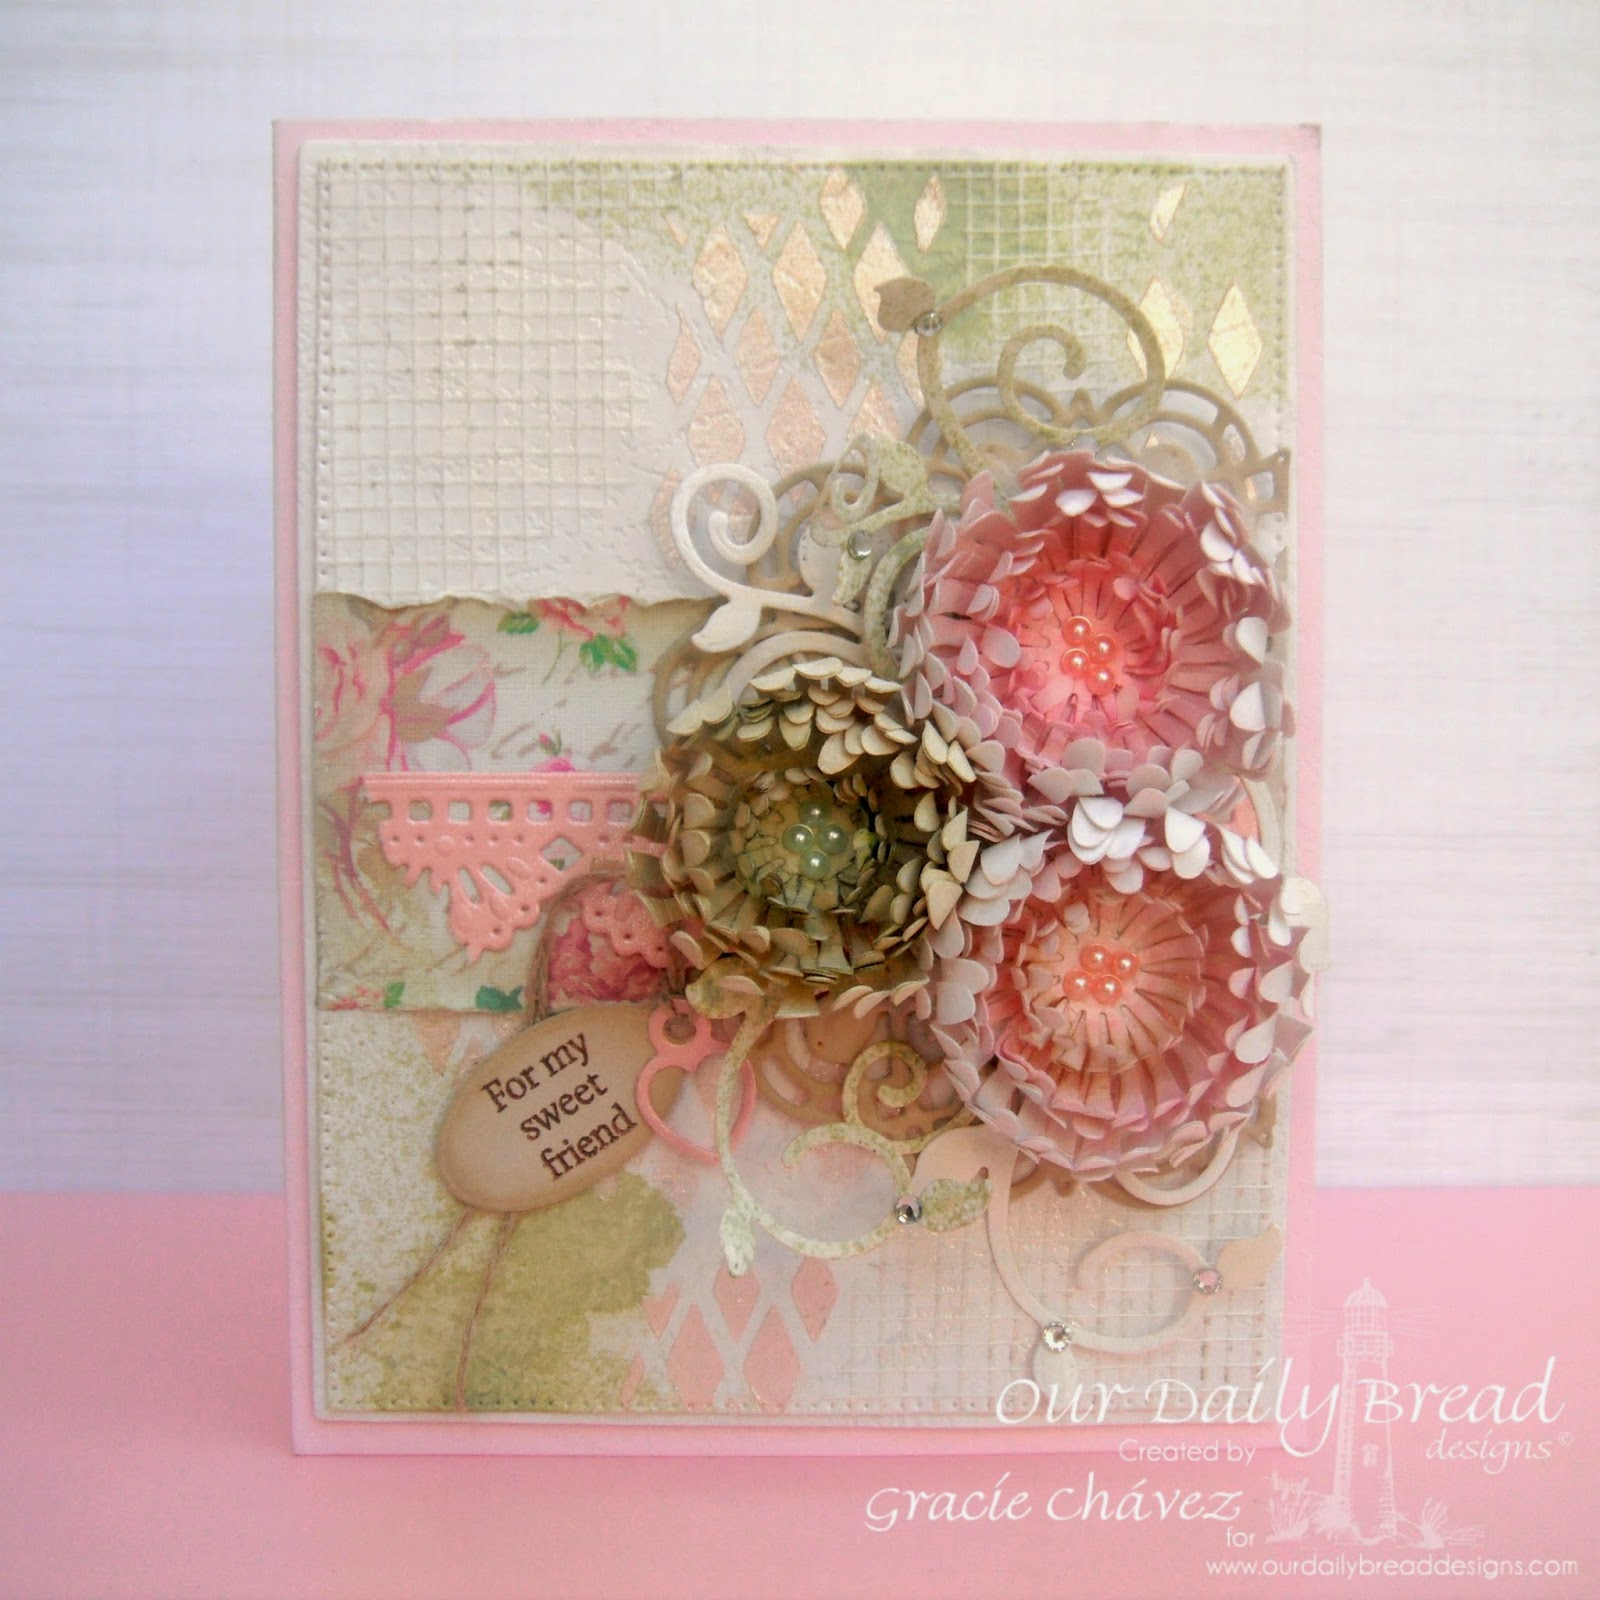 Our Daily Bread Designs, Aster Dies, Fancy Foliage, Beautiful Borders, Mini Tag Dies, Doily Dies, Mini Tag Sentiments, Flourished Star Pattern, Designed by Gracie Chávez